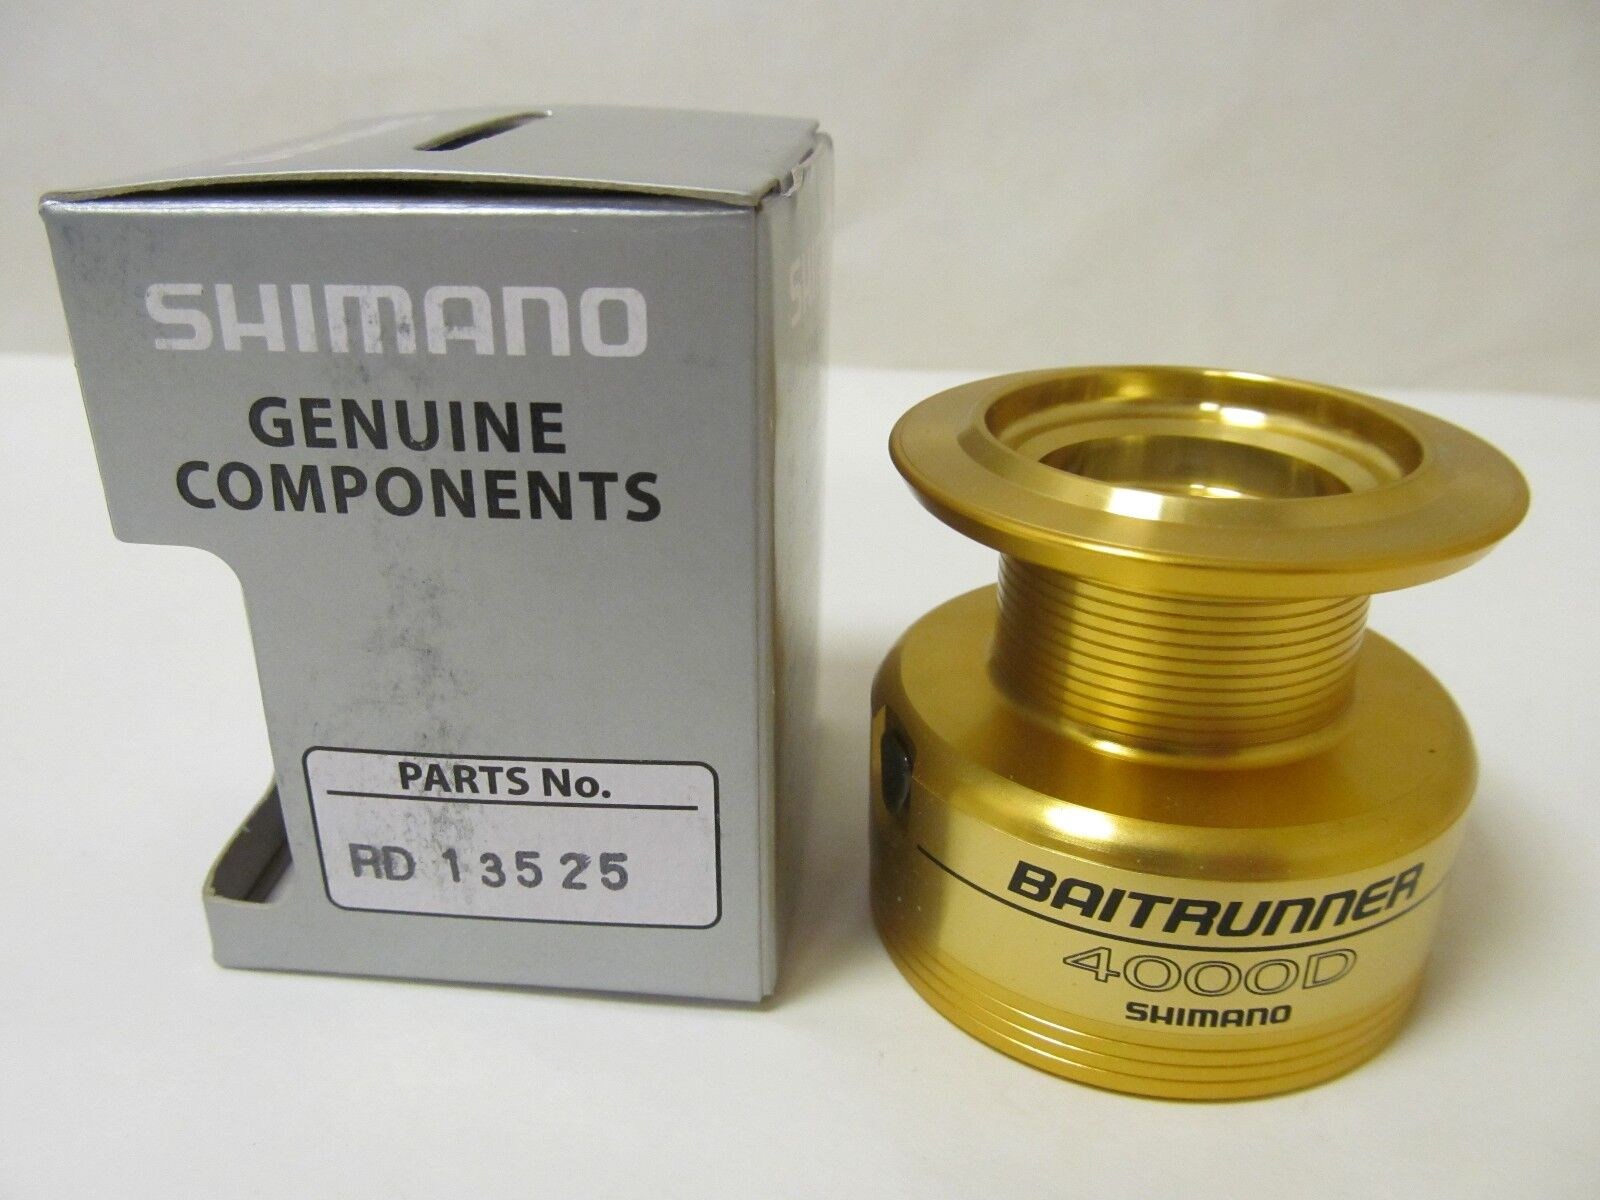 SHIMANO SPARE SPOOL TO FIT BAITRUNNER 4000 D (RD 13525)